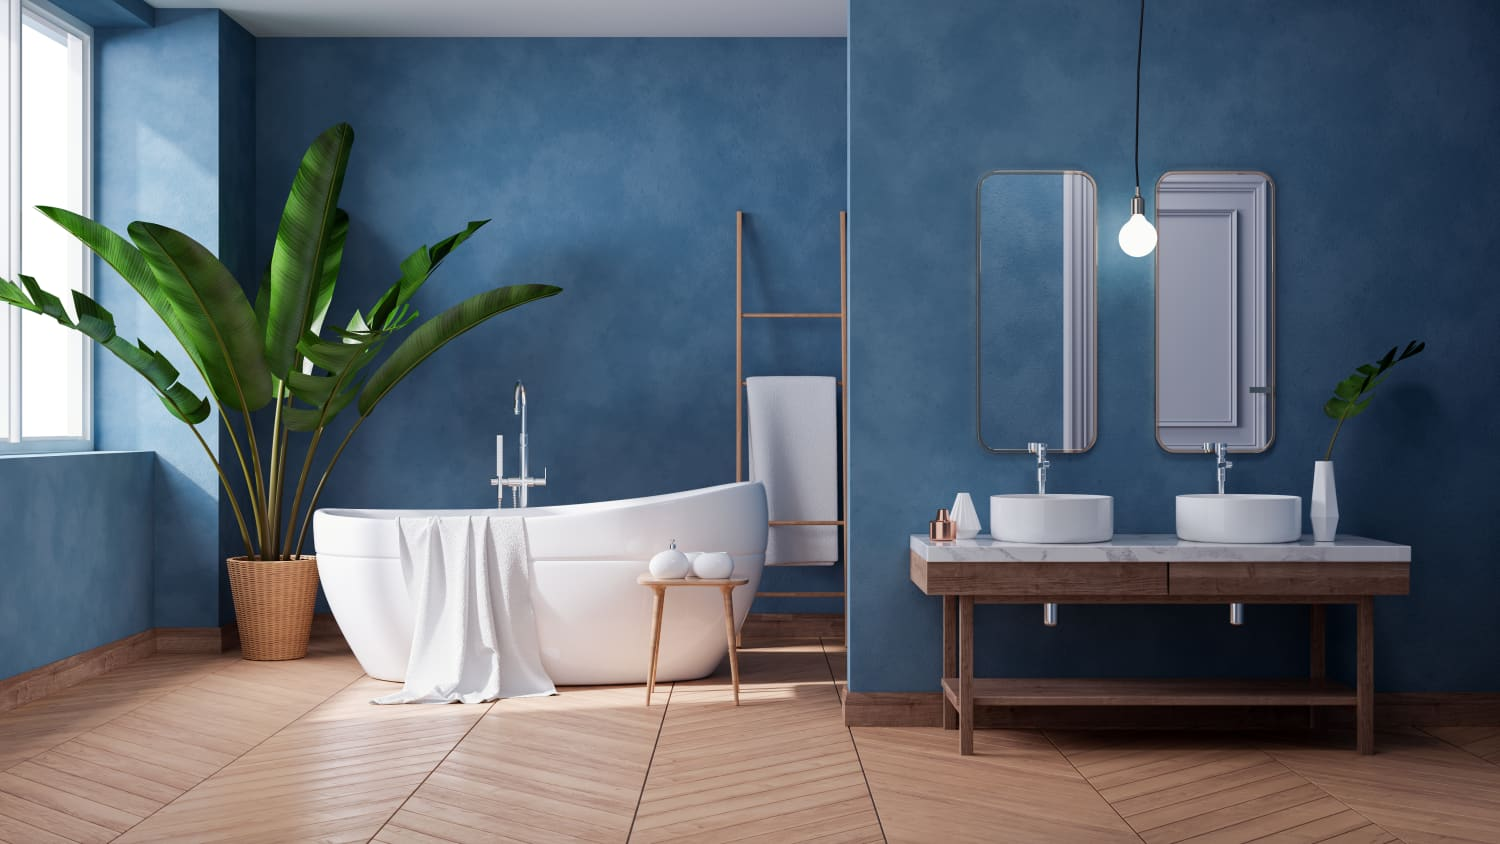 These Are The Most Photographed Hotel Bathrooms on Instagram